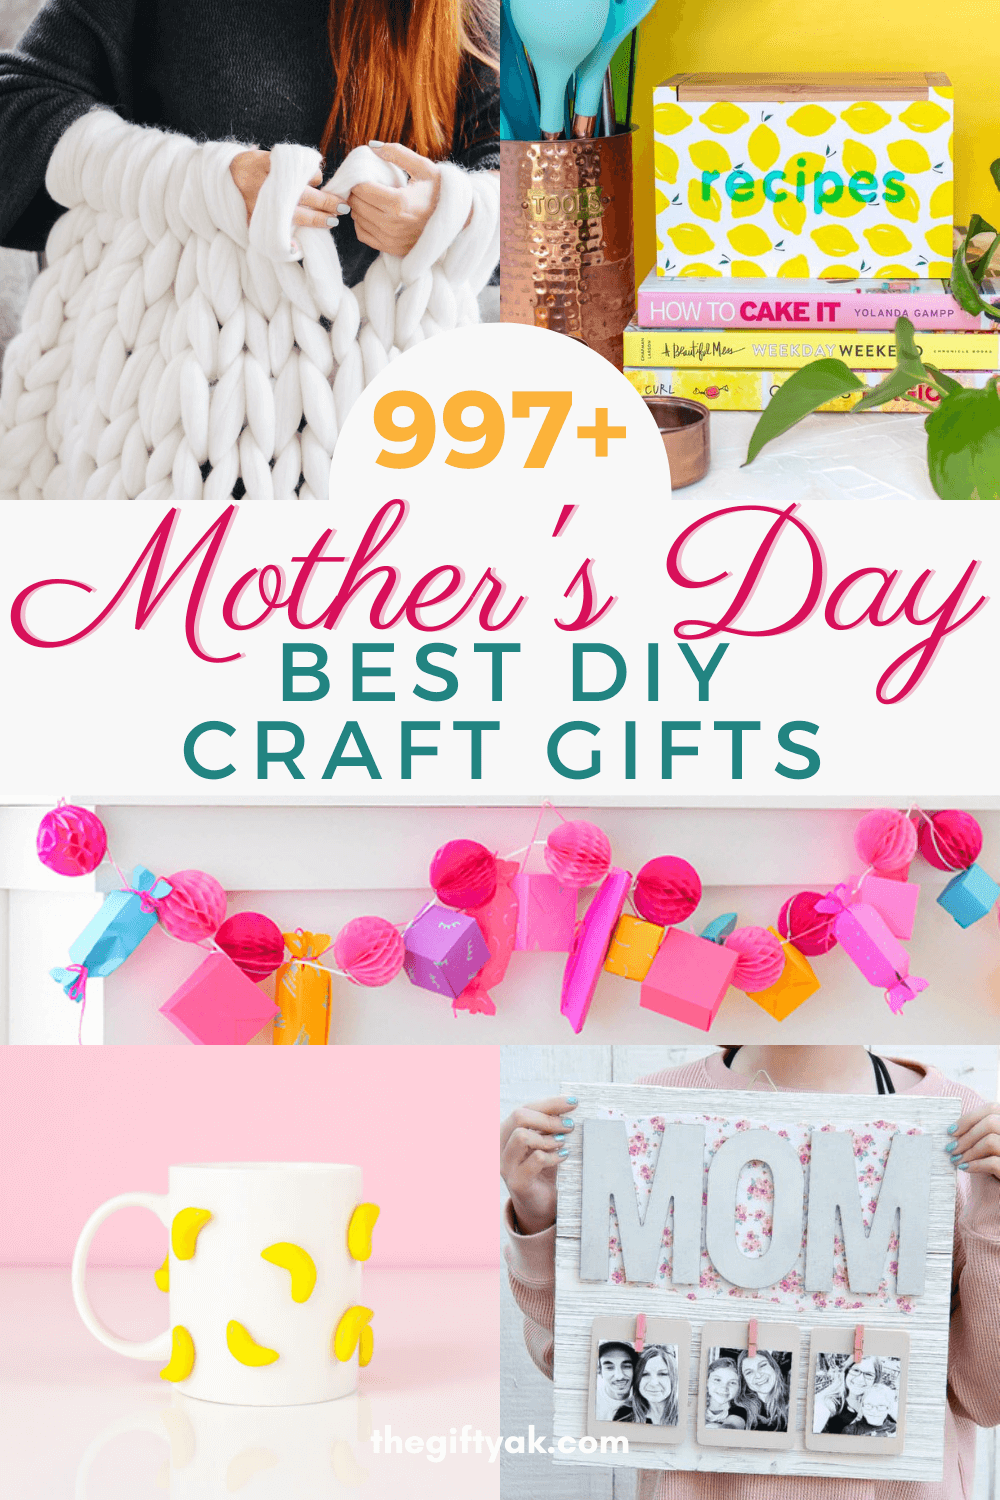 997 Best Mothers Day DIY Homemade Craft Gift Inspiration Pinterest How to Make Tutorial Guide